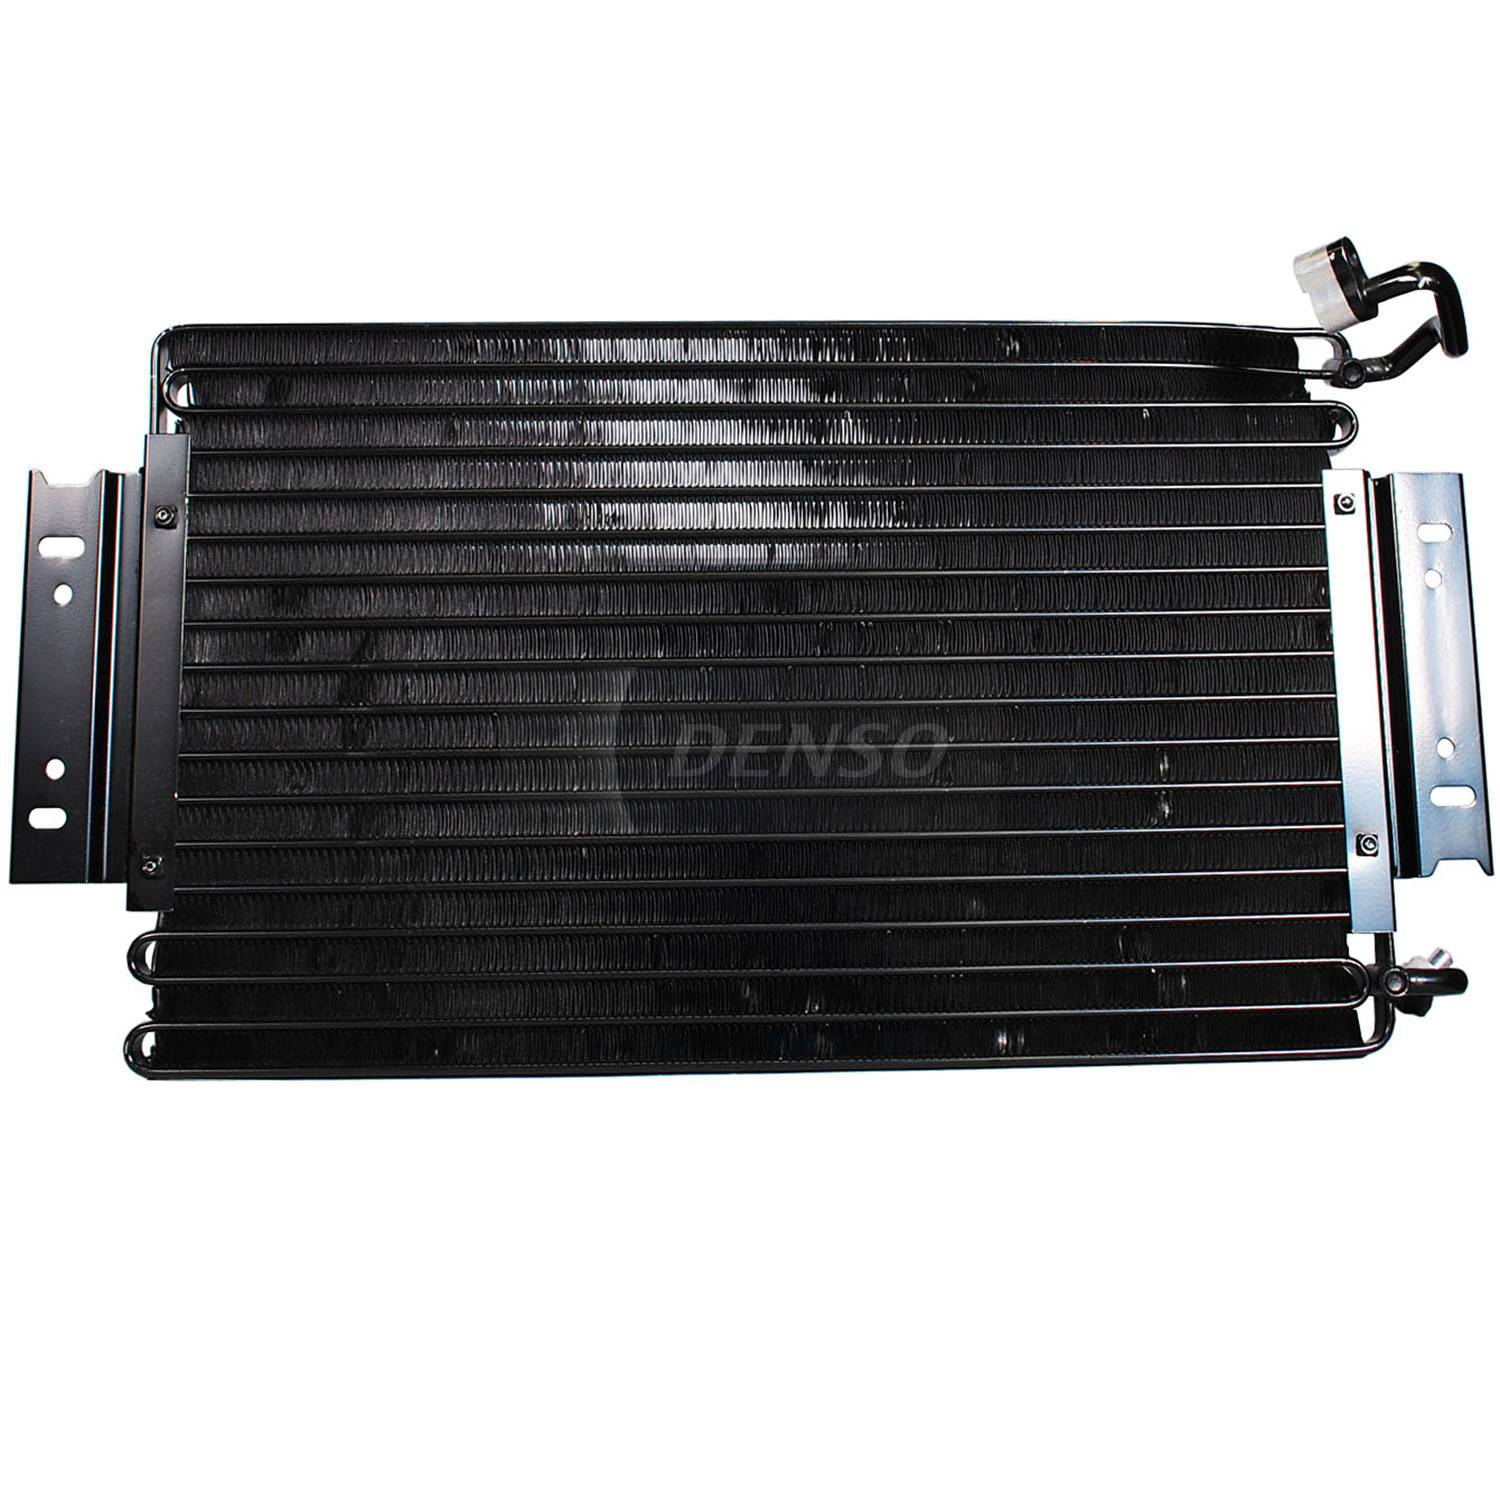 A//C AC Condenser Assembly Replacement for Chevrolet Pontiac Saturn 20820057 20820058